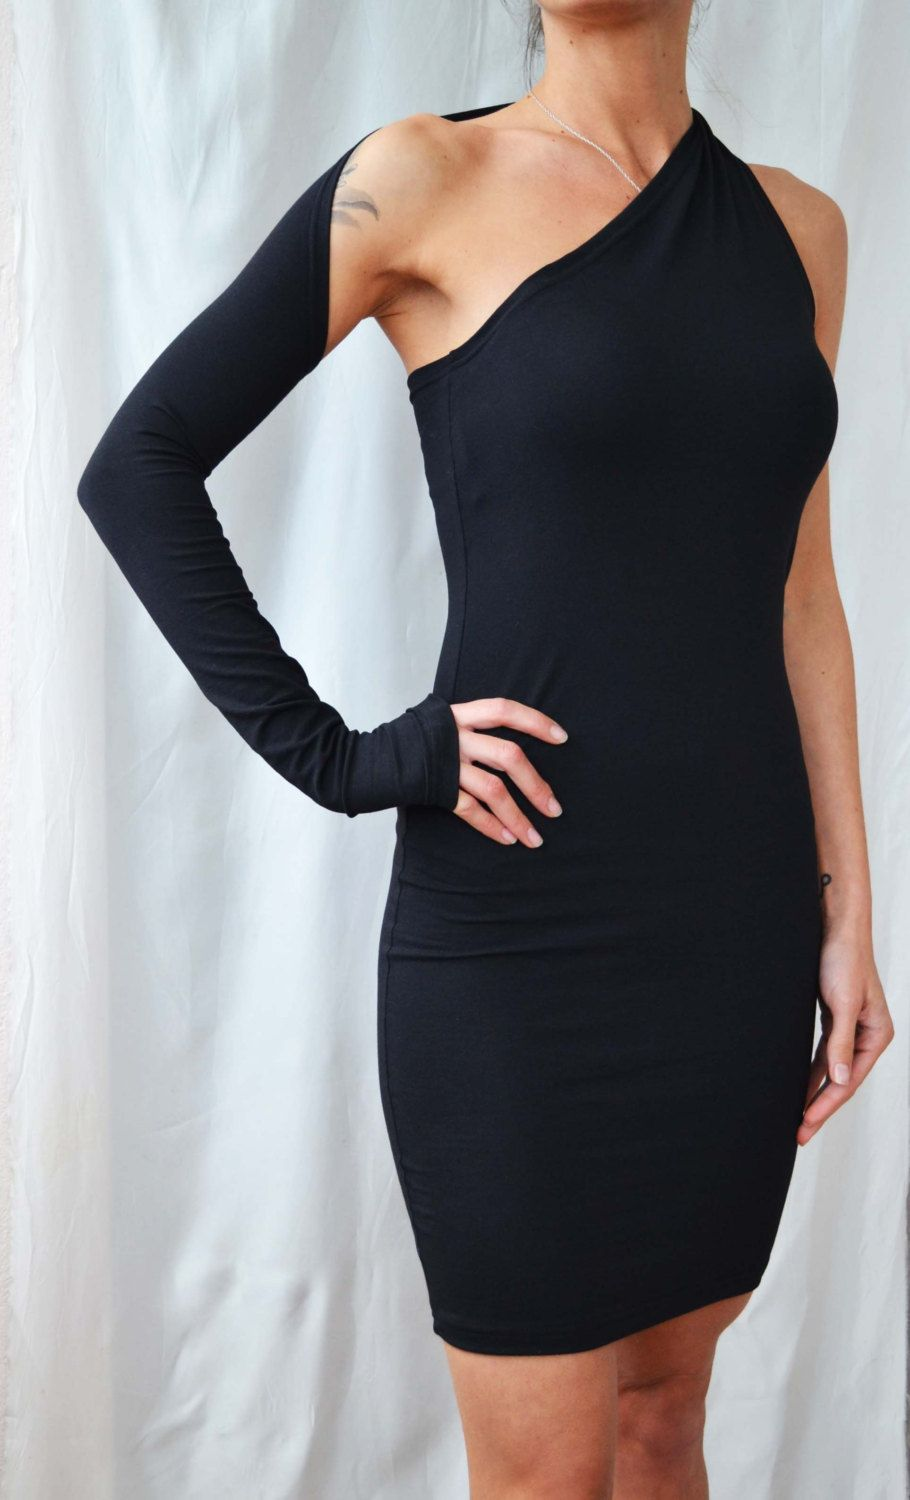 Black dress with one long sleeve